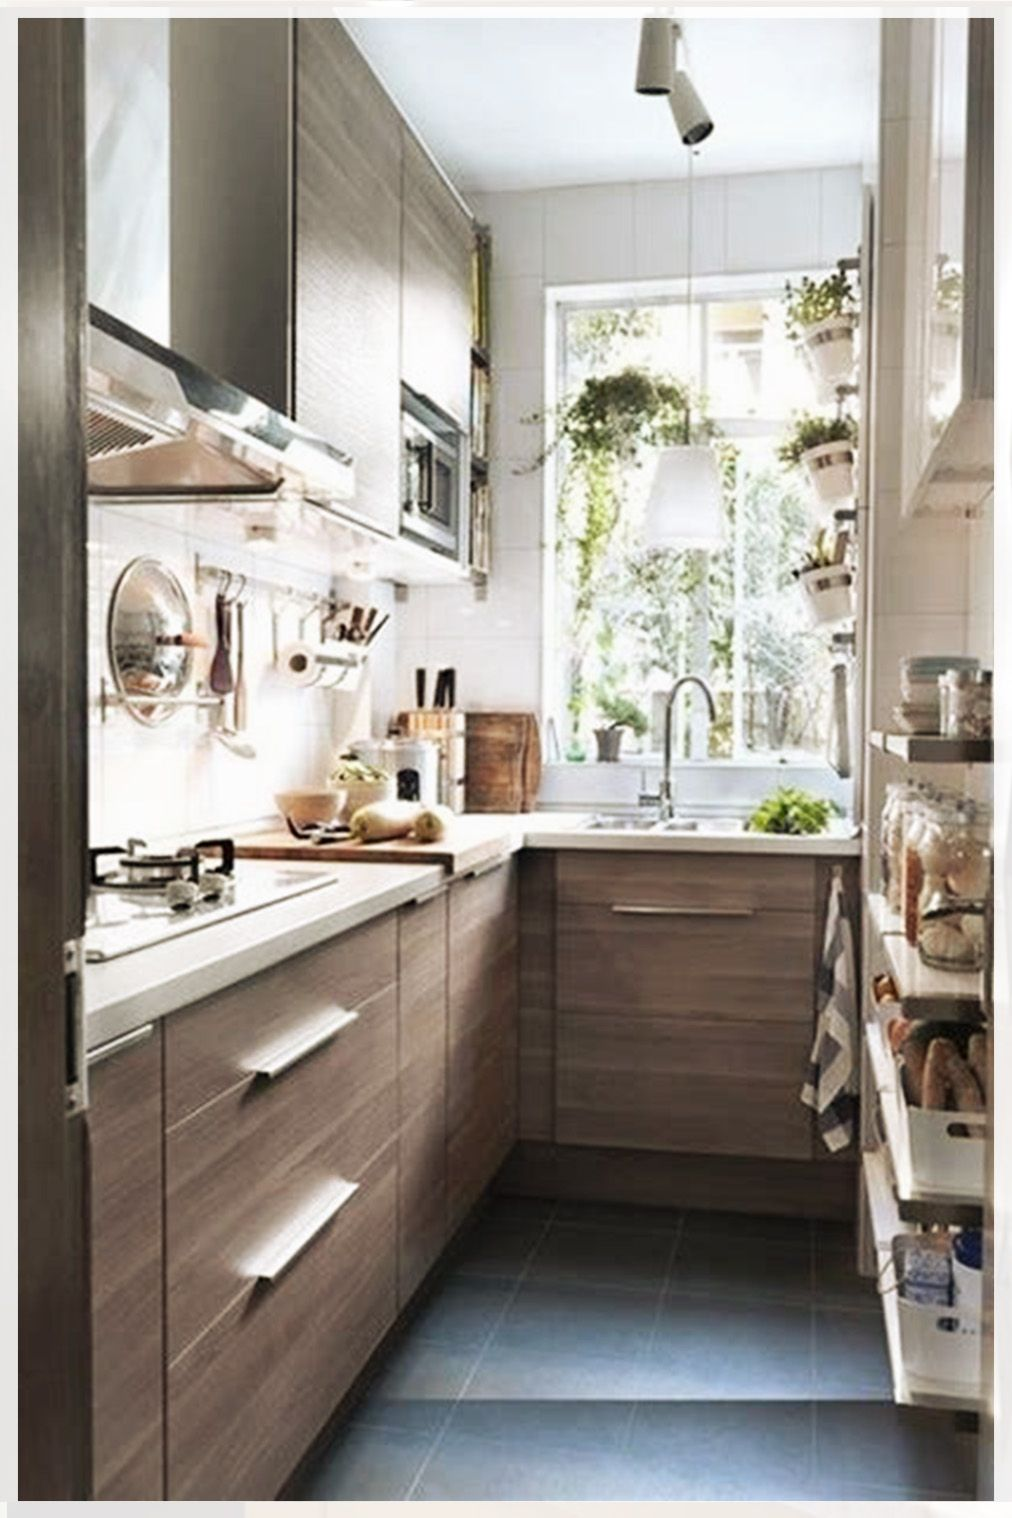 20 Affordable Kitchen Remodel Ideas Before And After For 2020 Remodel Tips Tool In 2020 Tiny House Kitchen Kitchen Design Small Diy Kitchen Remodel